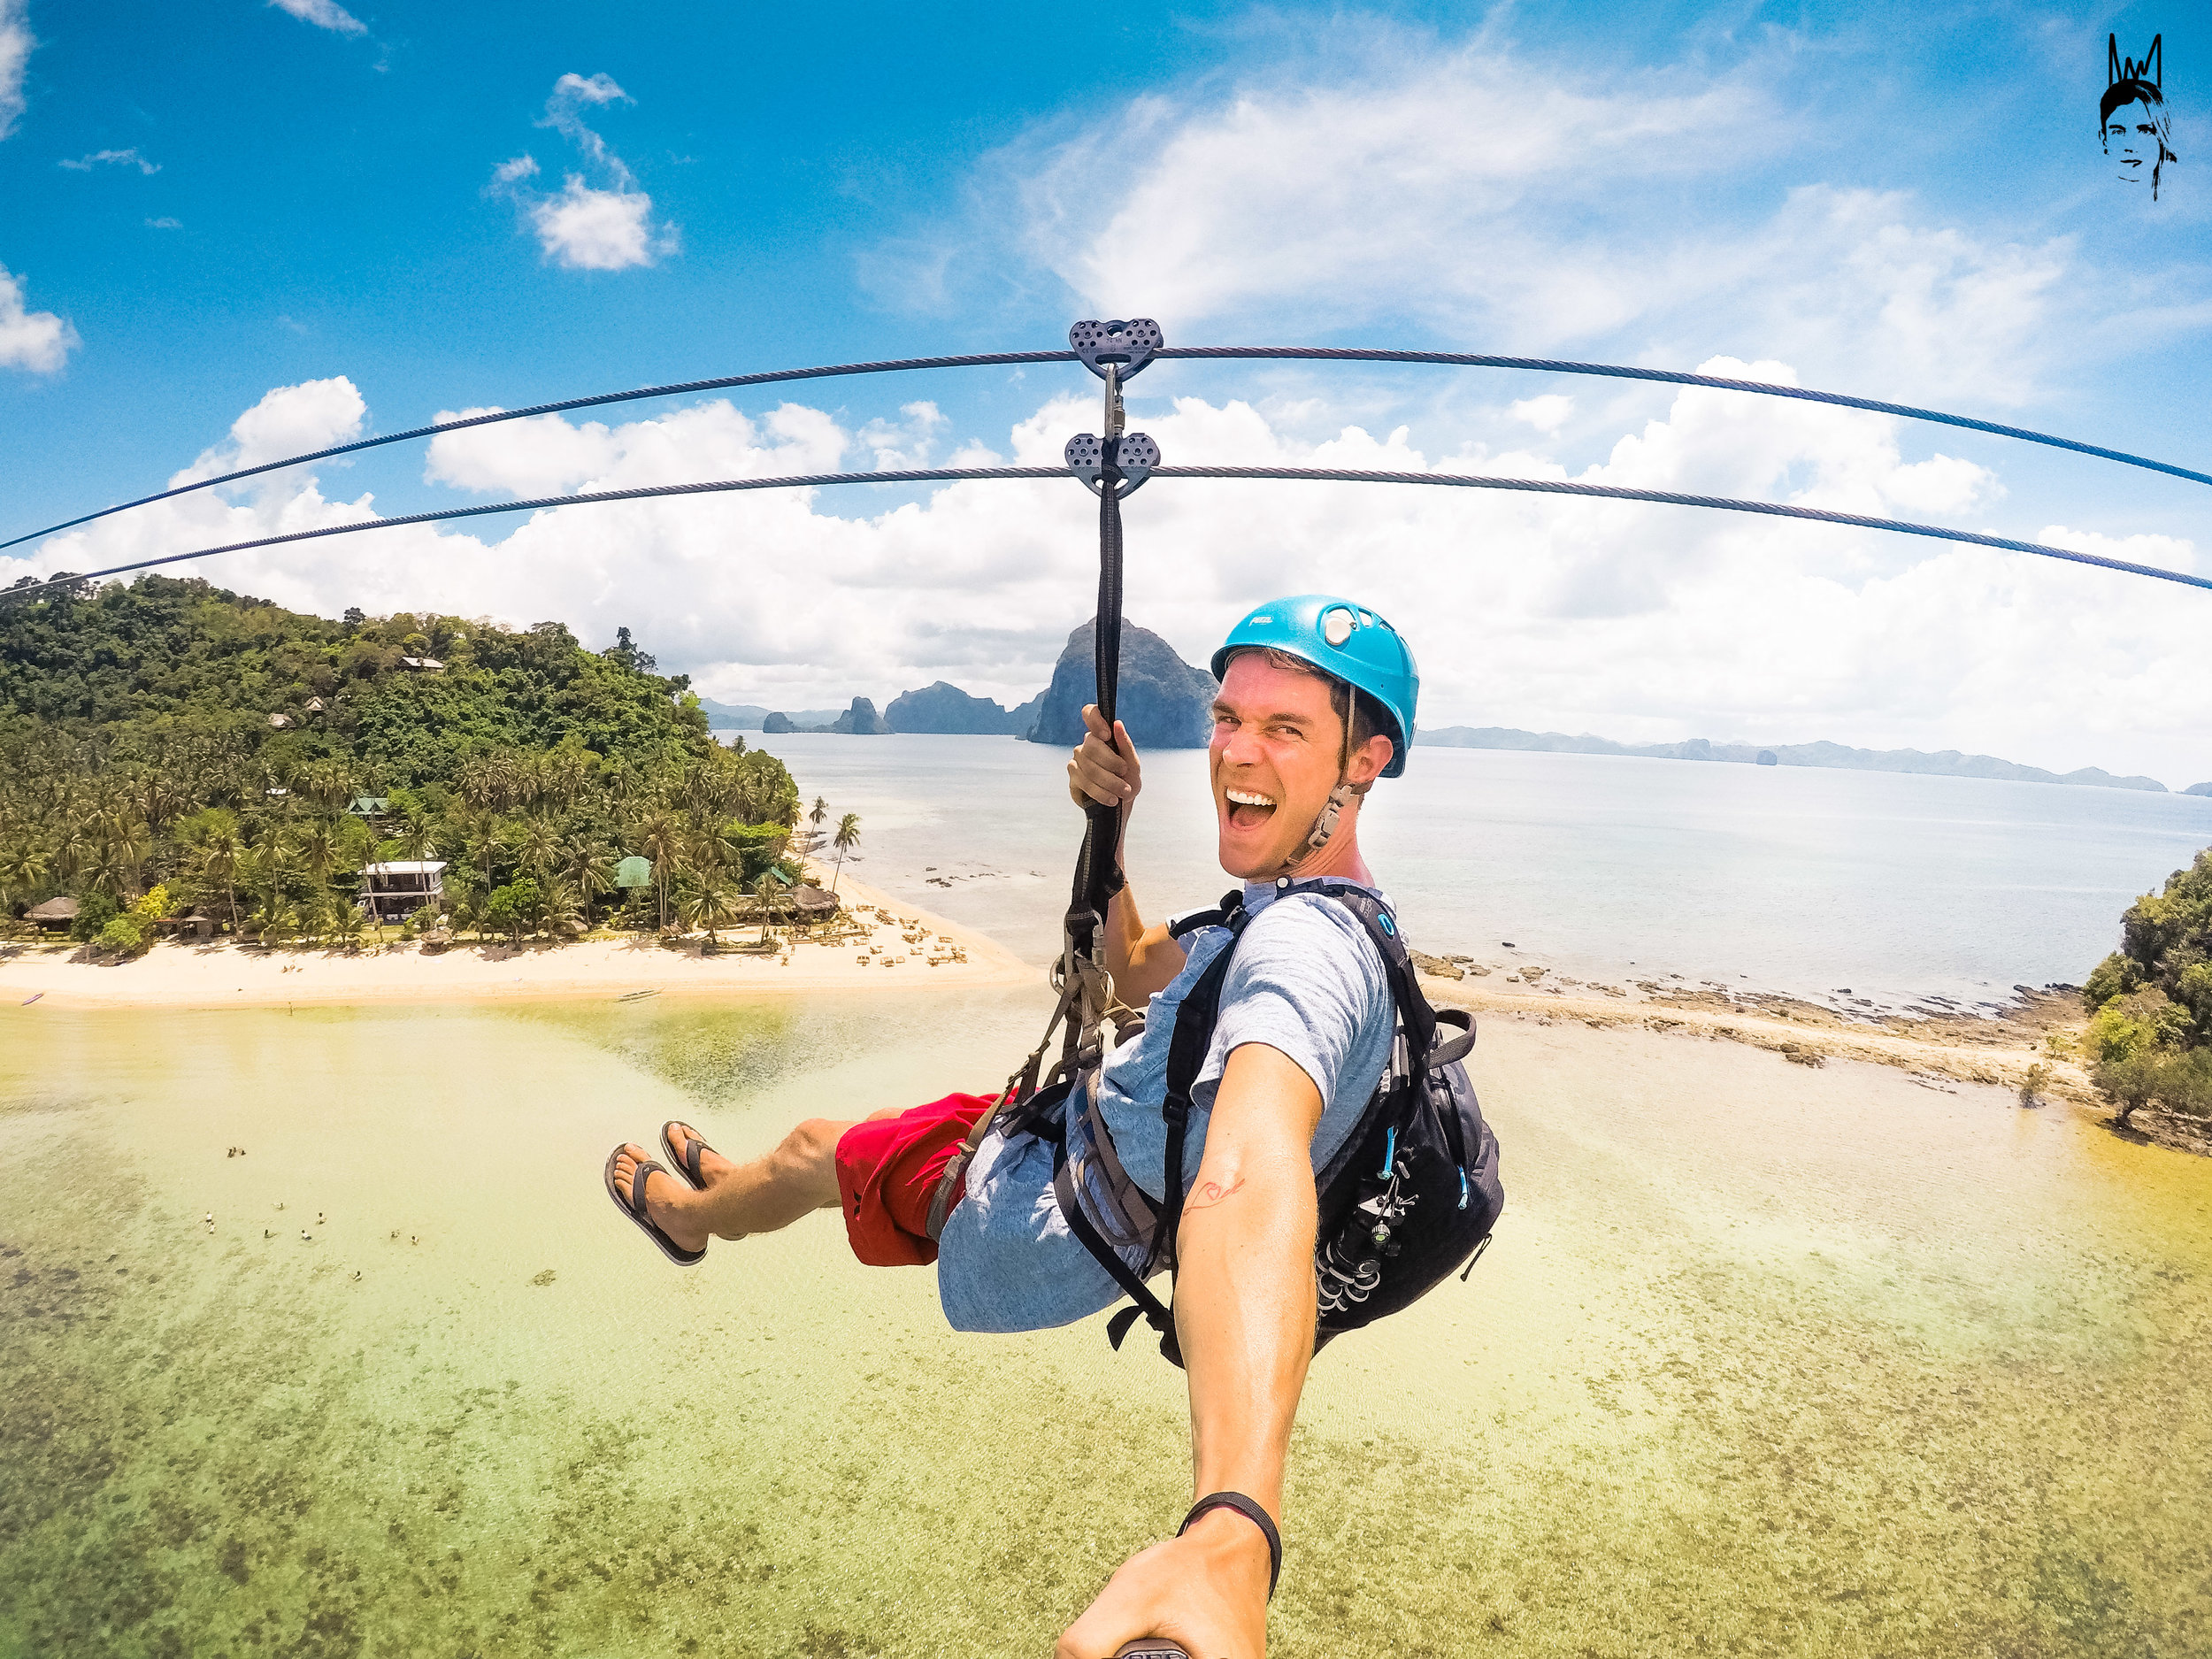 Zip lining from one island to another! El Nido